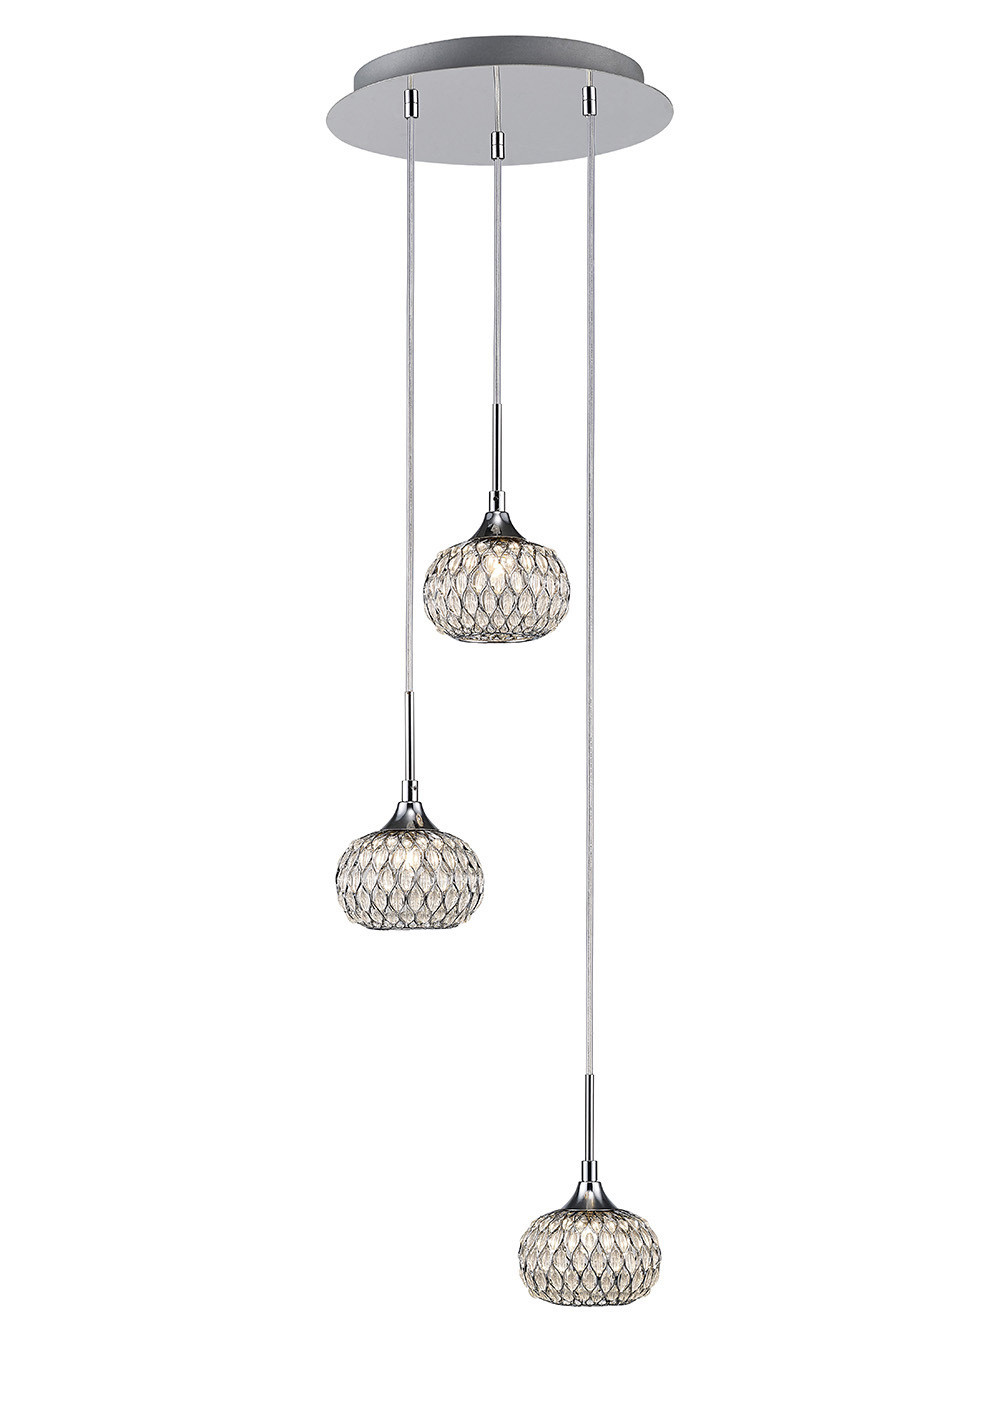 Chelsie Pendant 3 Light Round Polished Chrome/Clear Glass